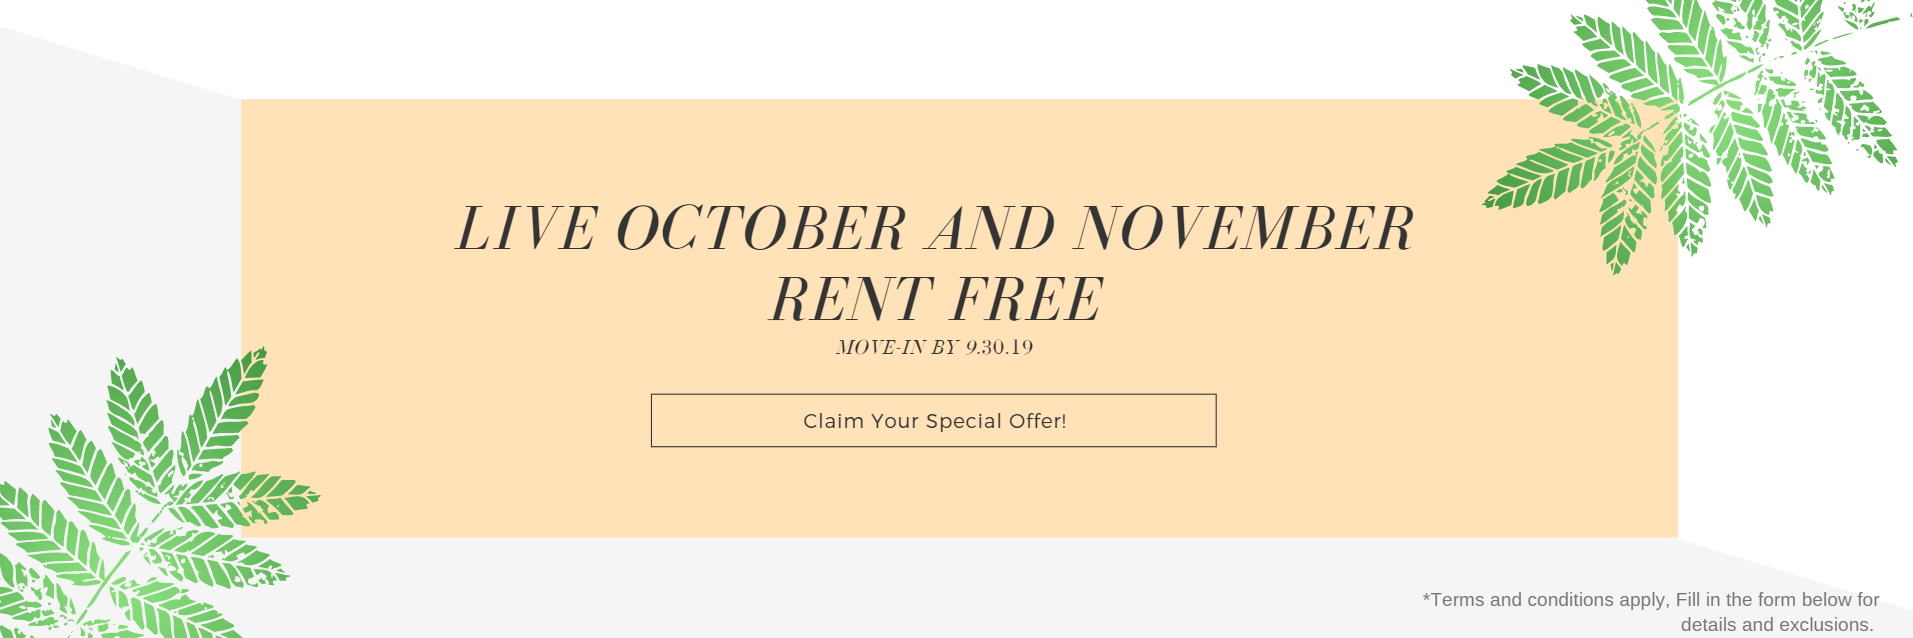 Oct and Nov Rent Free Special